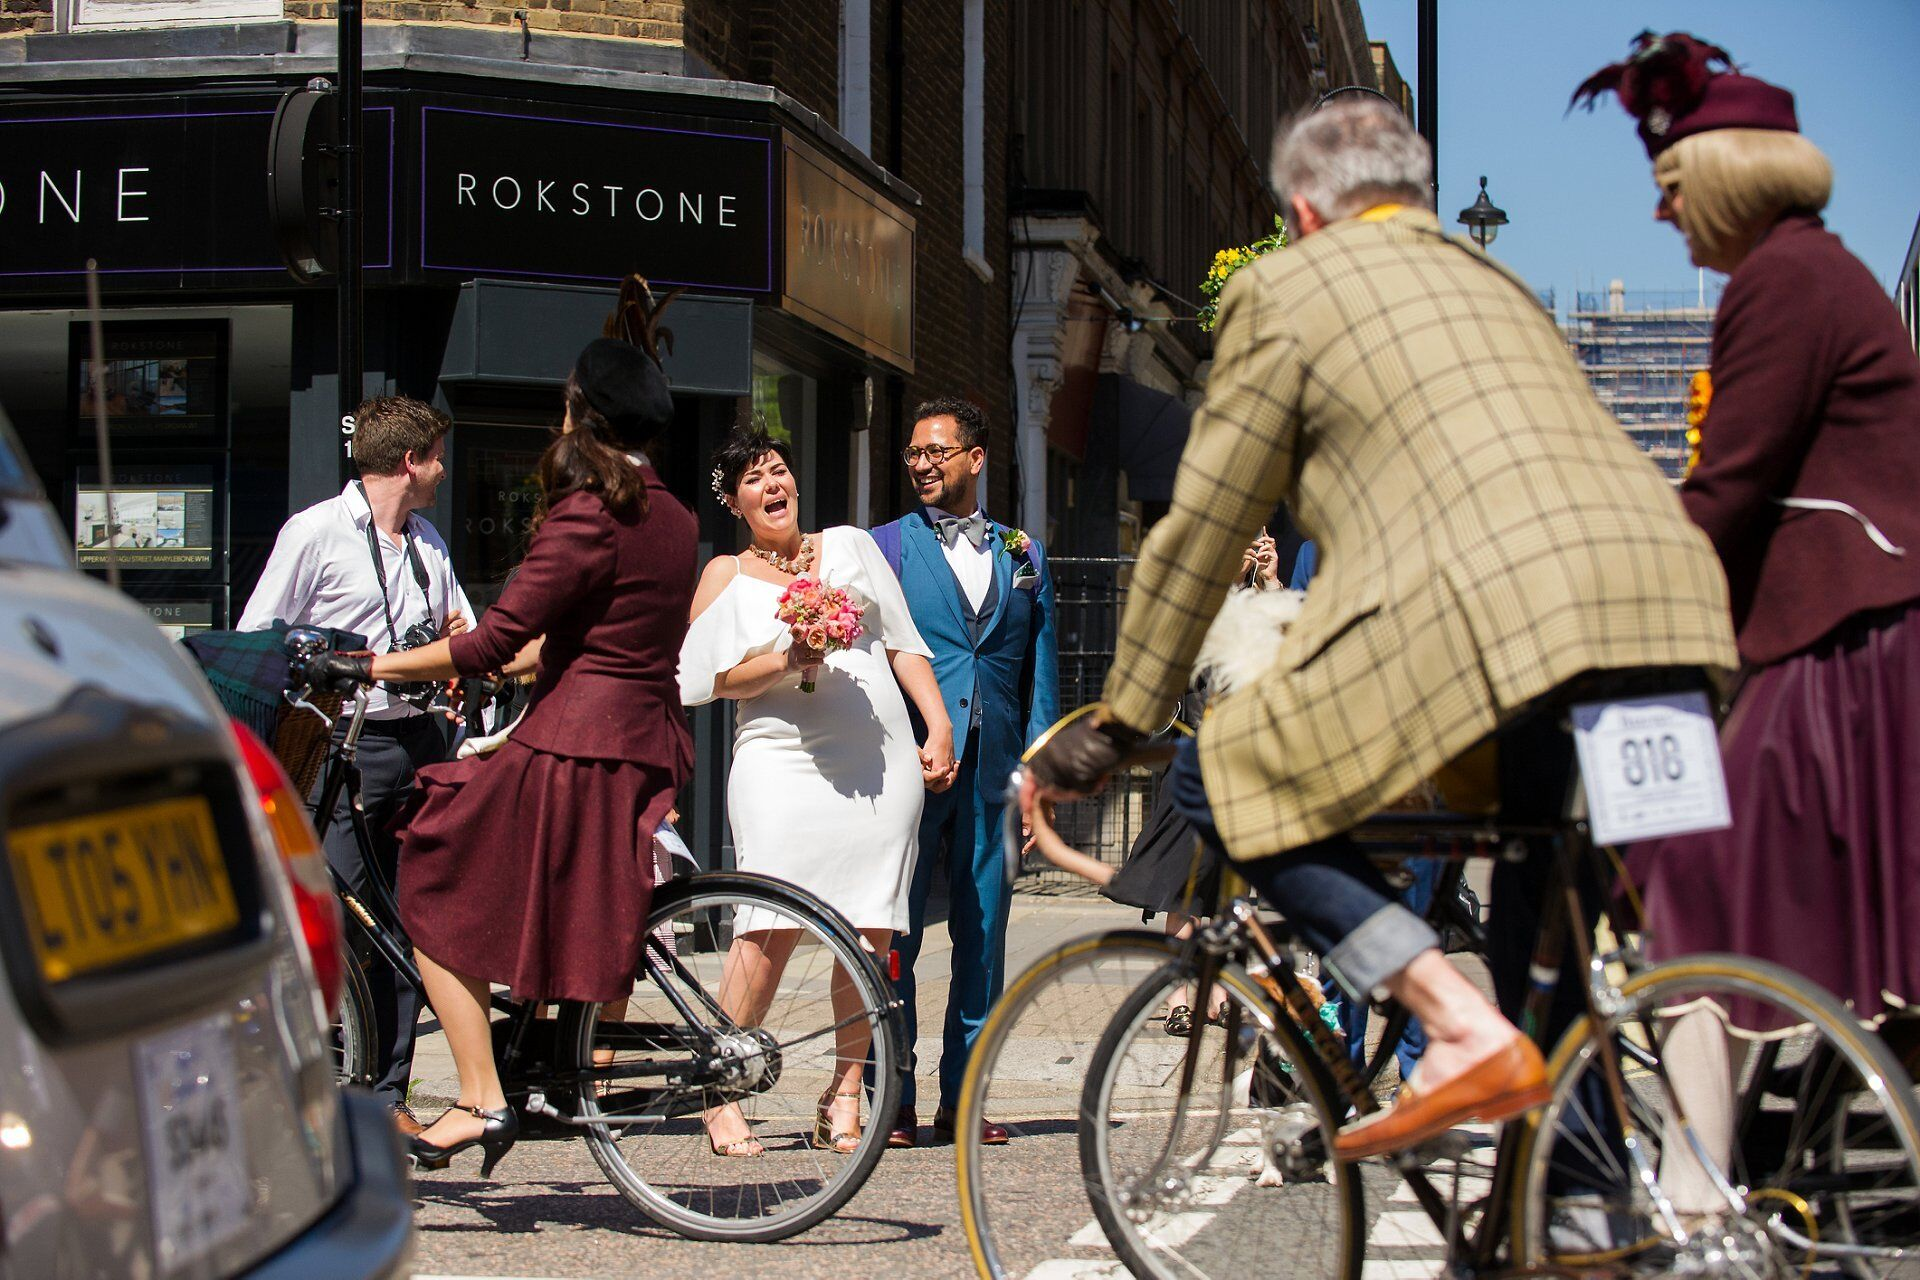 annual tweed bicycle ride on london's chiltern street with just married couple looking on and laughing (after their marylebone room ceremony)